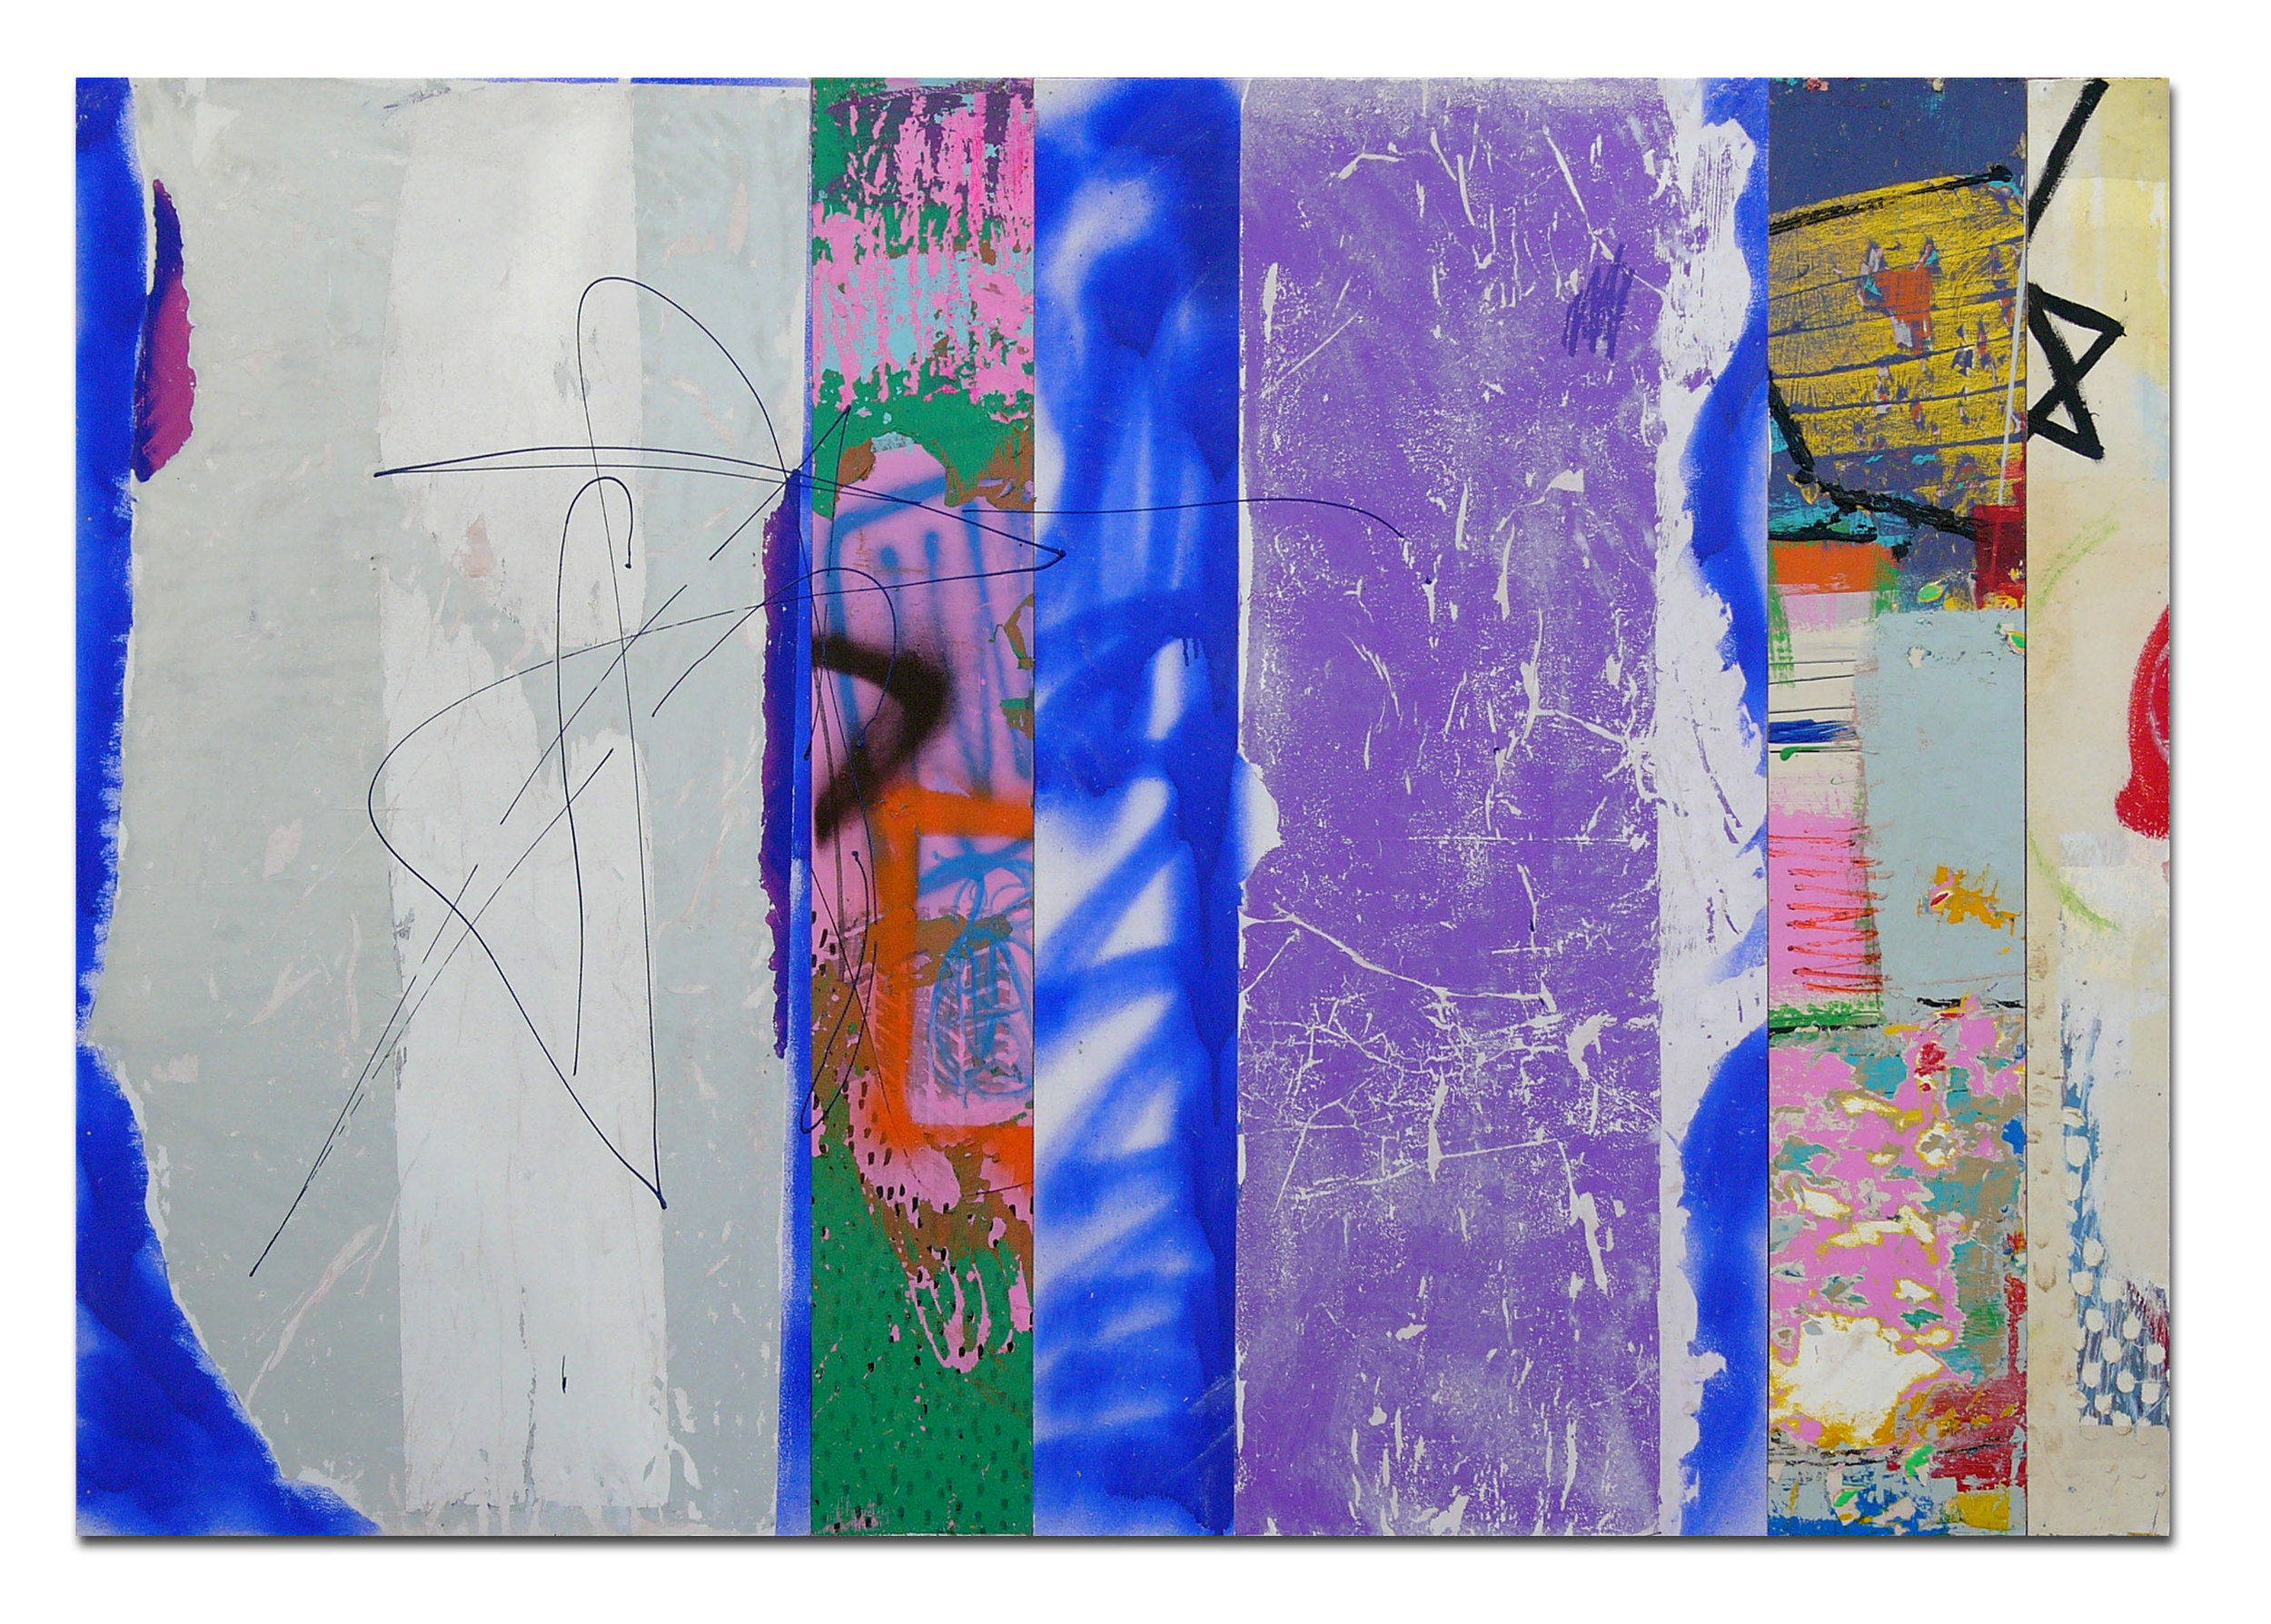 CANDEart_BobCy Street_2017_multimedia painting with image transfer on multipanel_48x68.5in(122x174cm).jpg